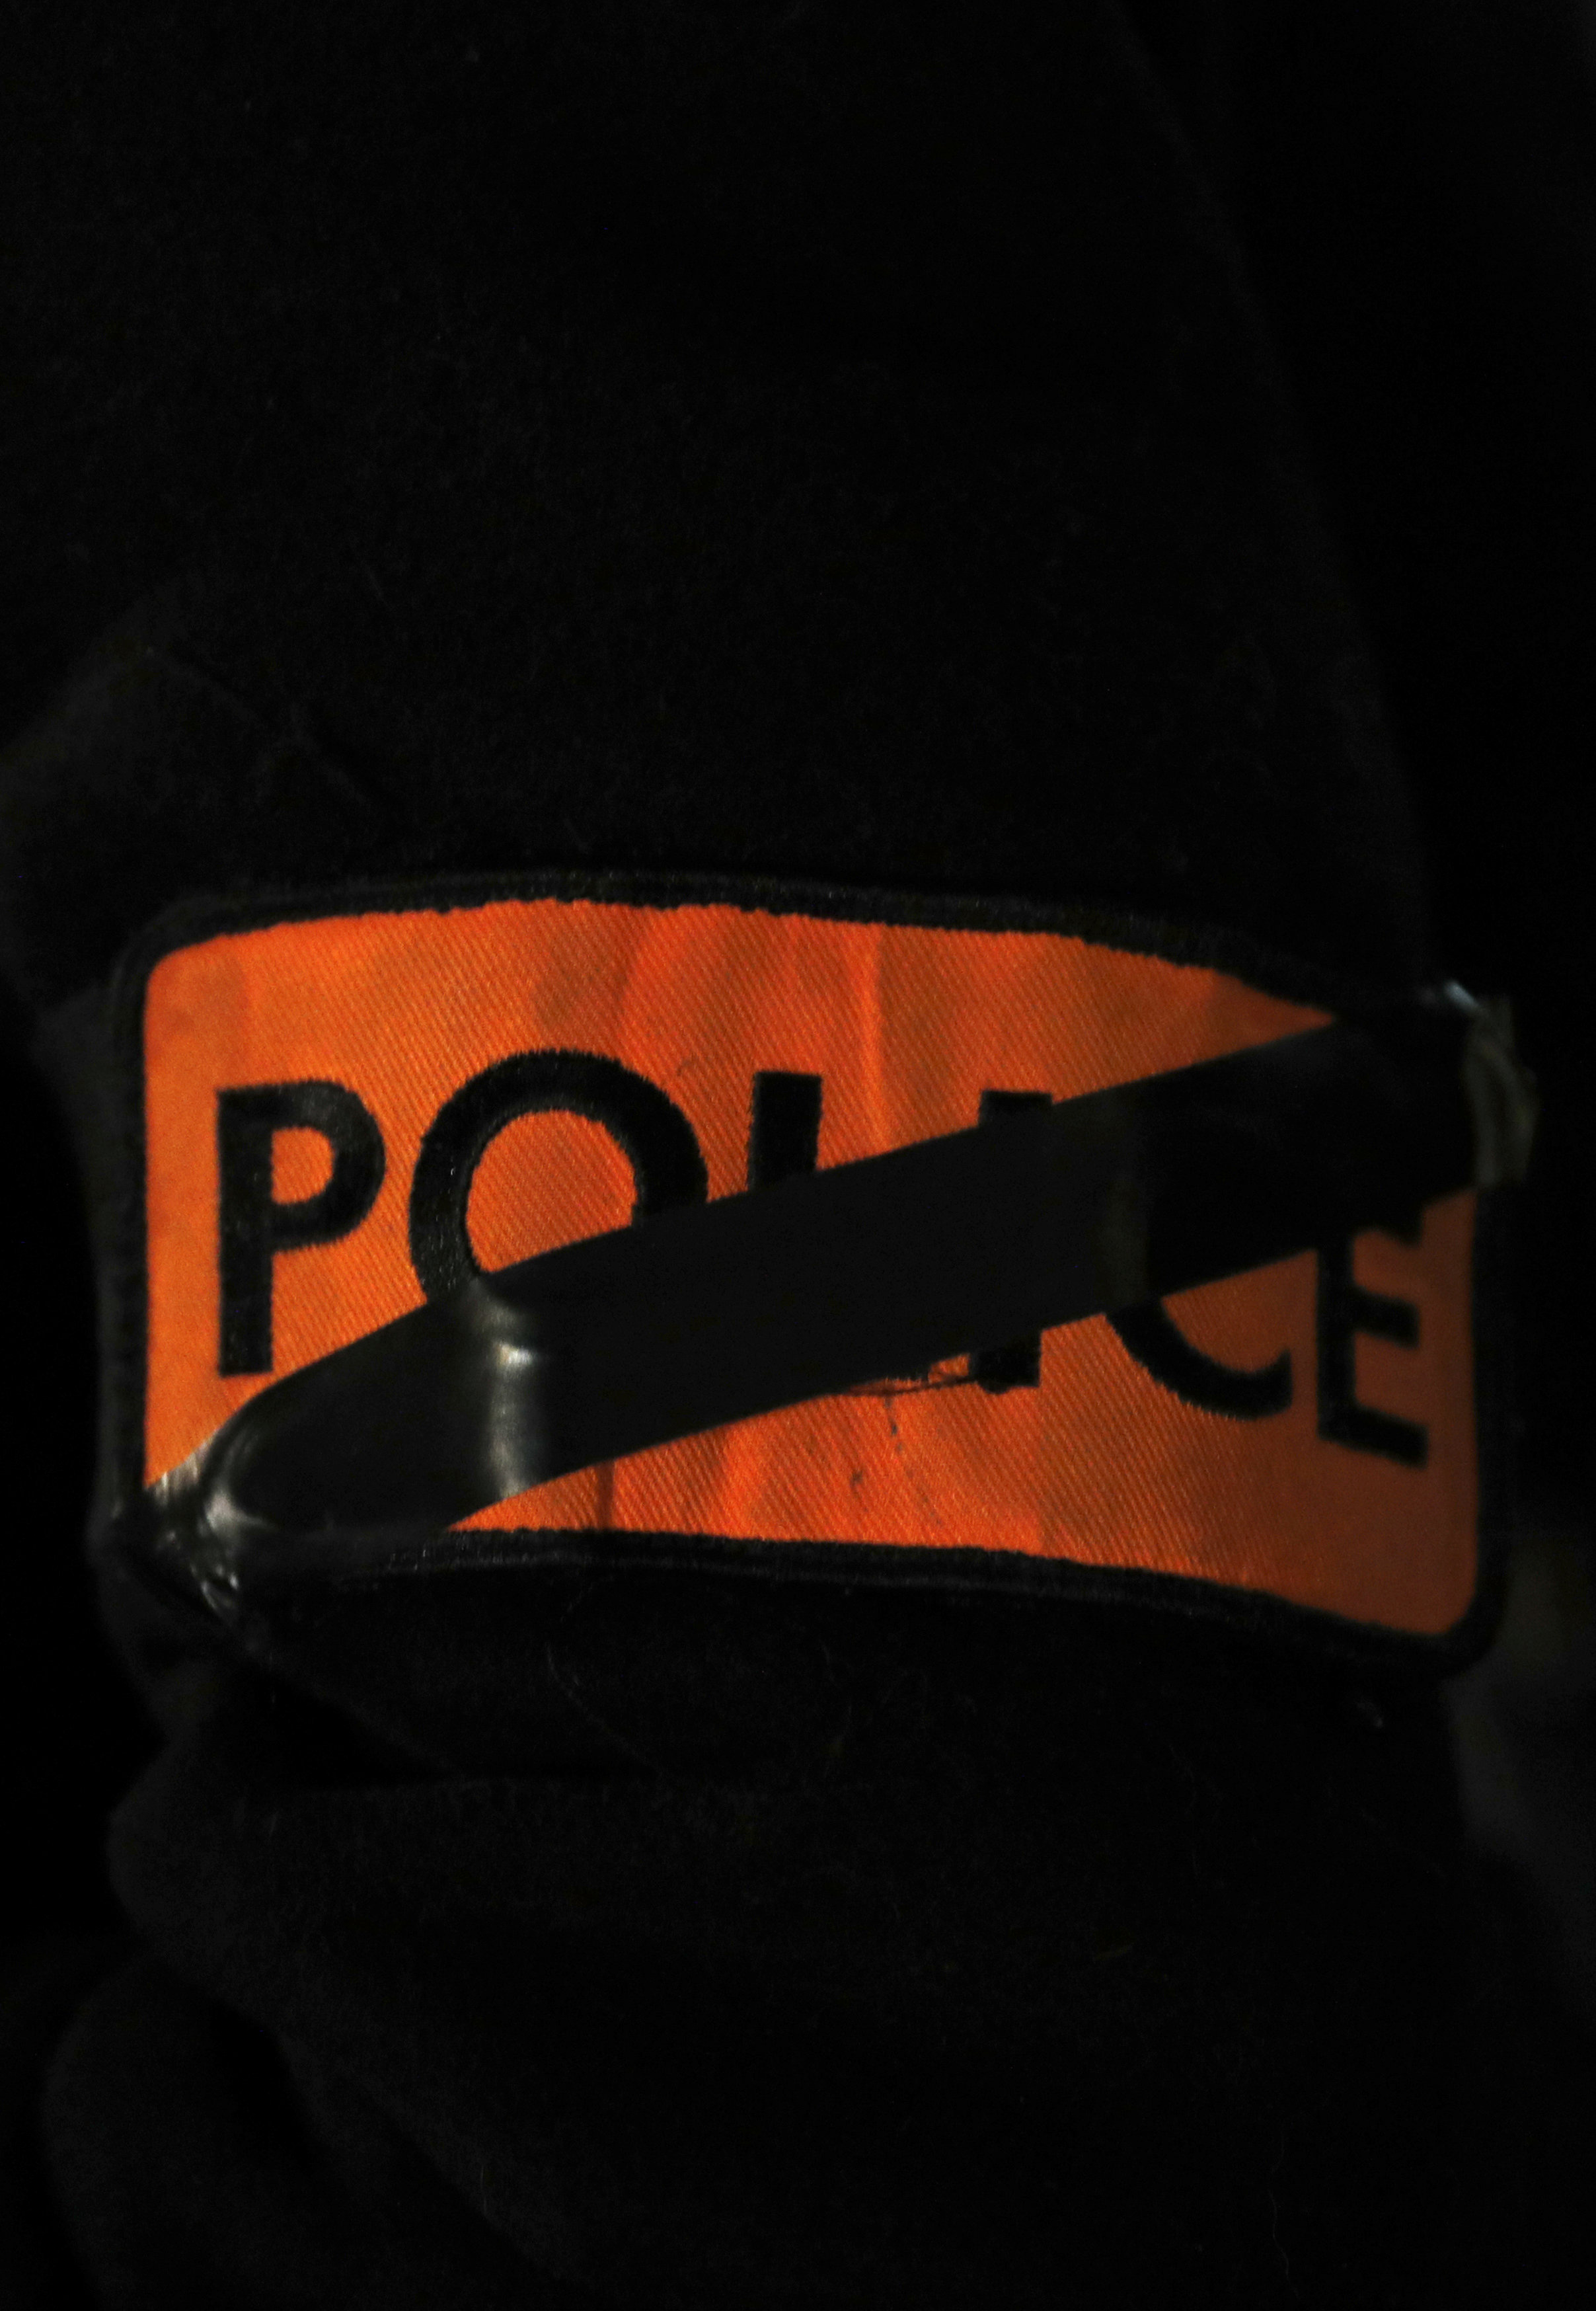 2018-12-20T222906Z_1473635640_RC18A1D5EBC0_RTRMADP_3_FRANCE-PROTESTS-POLICE